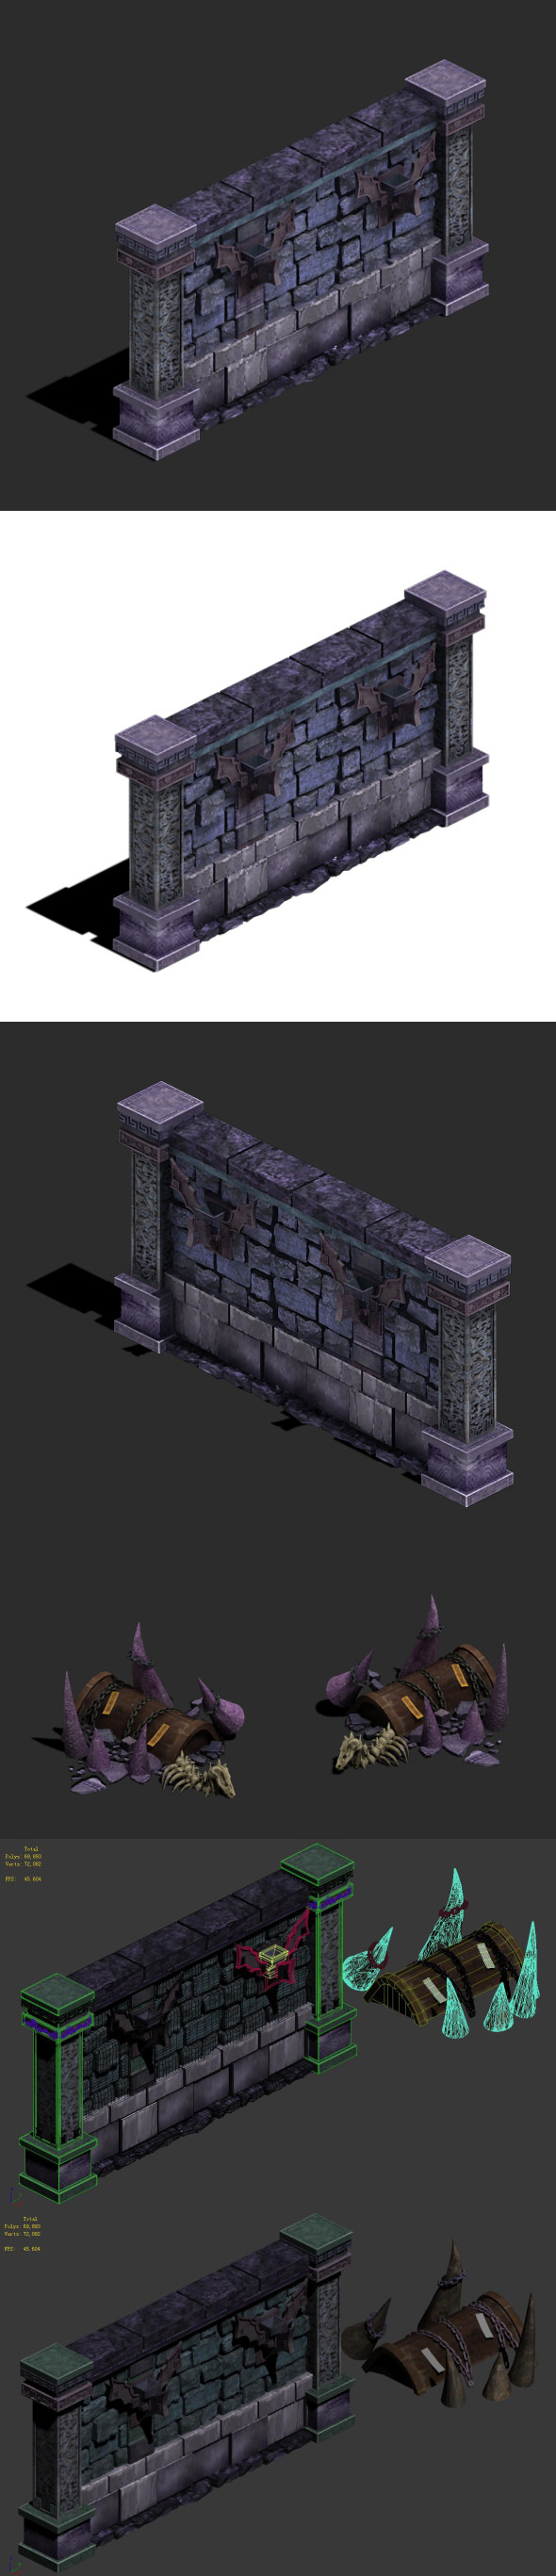 Wicked grave - wall - 3DOcean Item for Sale